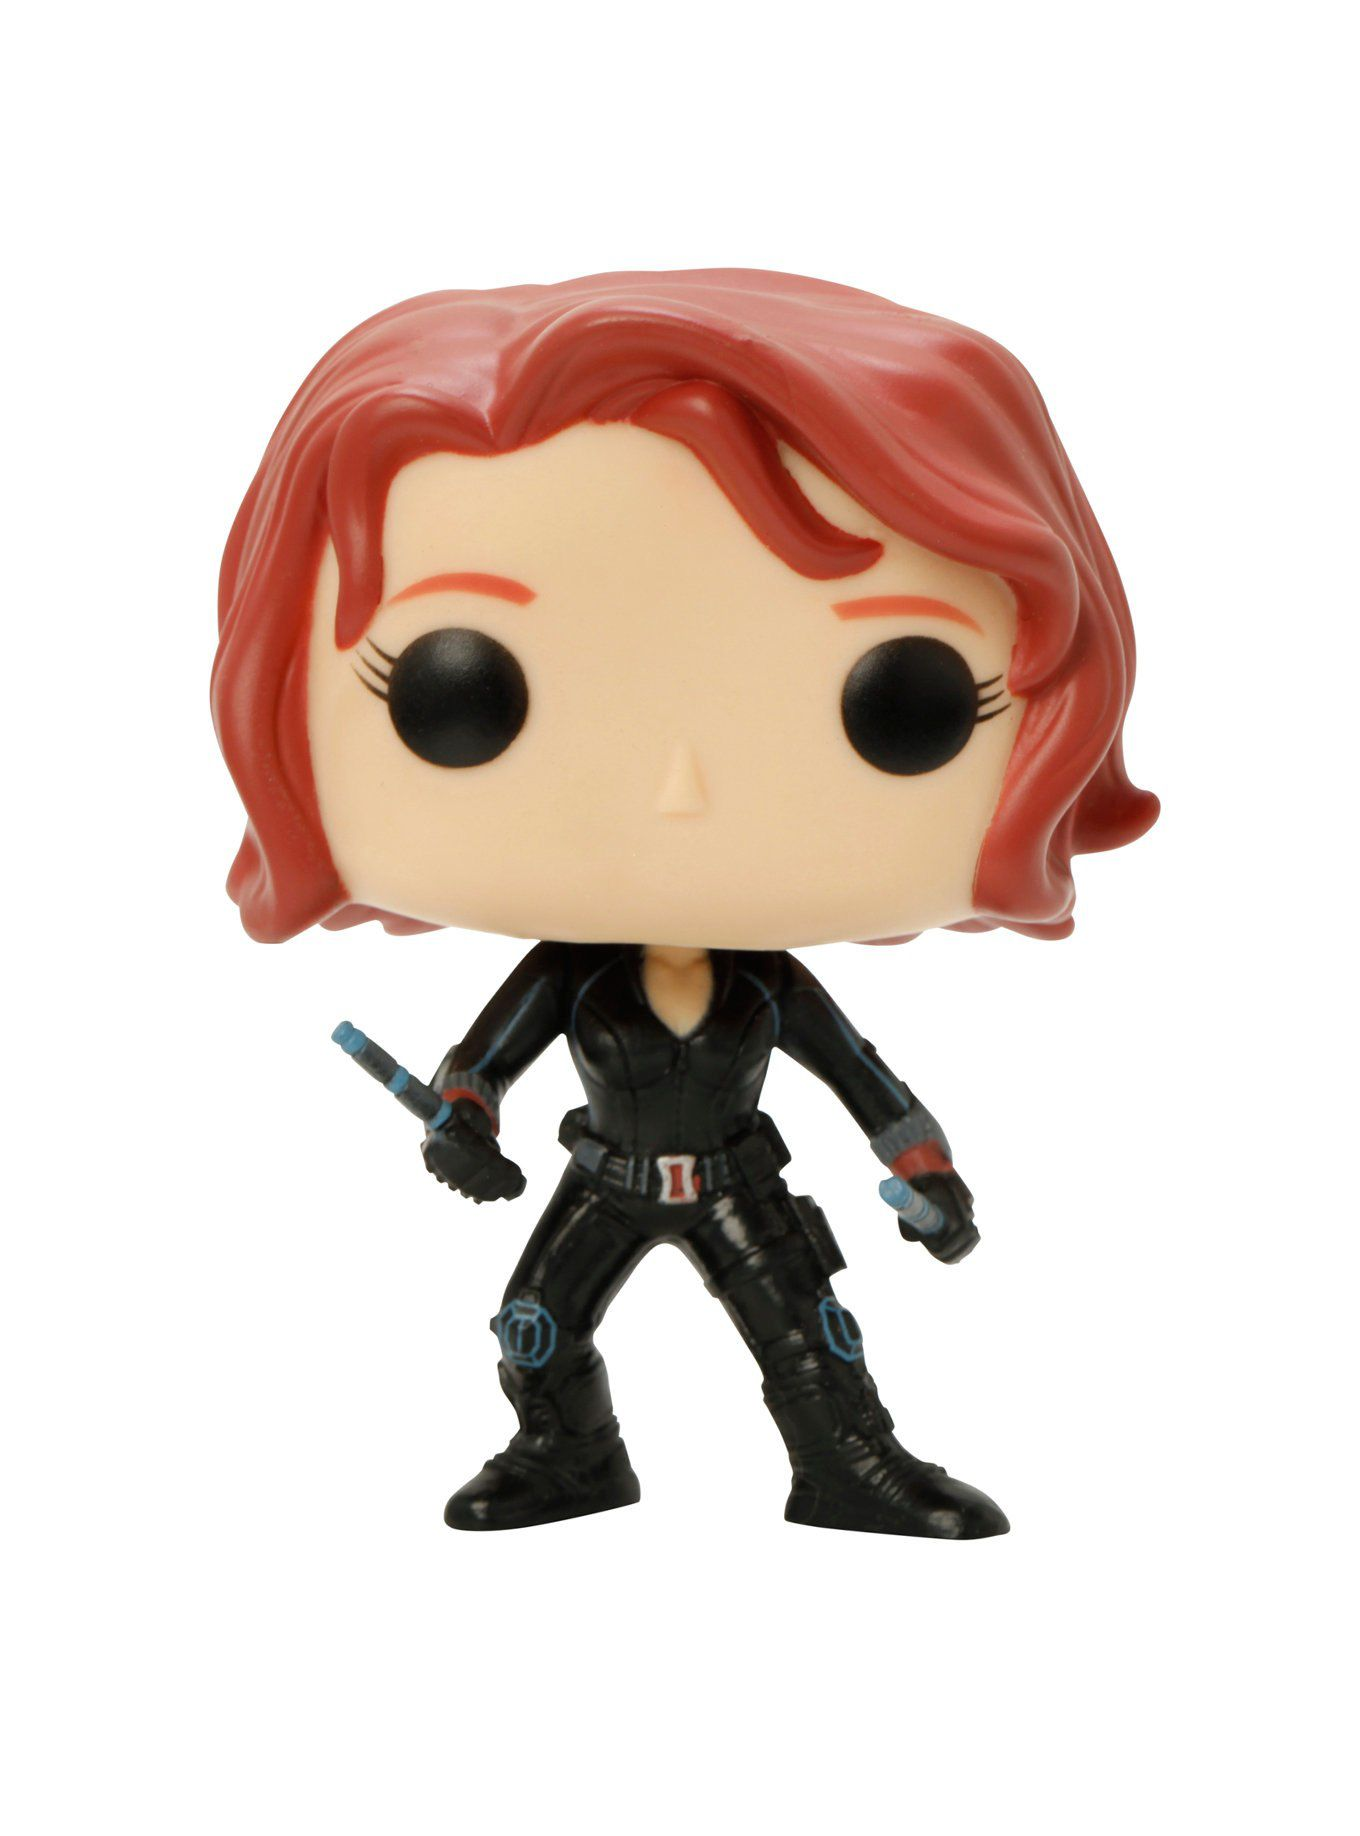 Black Widow #91 ( Viúva Negra ) - Avengers Age of Ultron ( Vingadores Era de Ultron ) - Funko Pop! Marvel